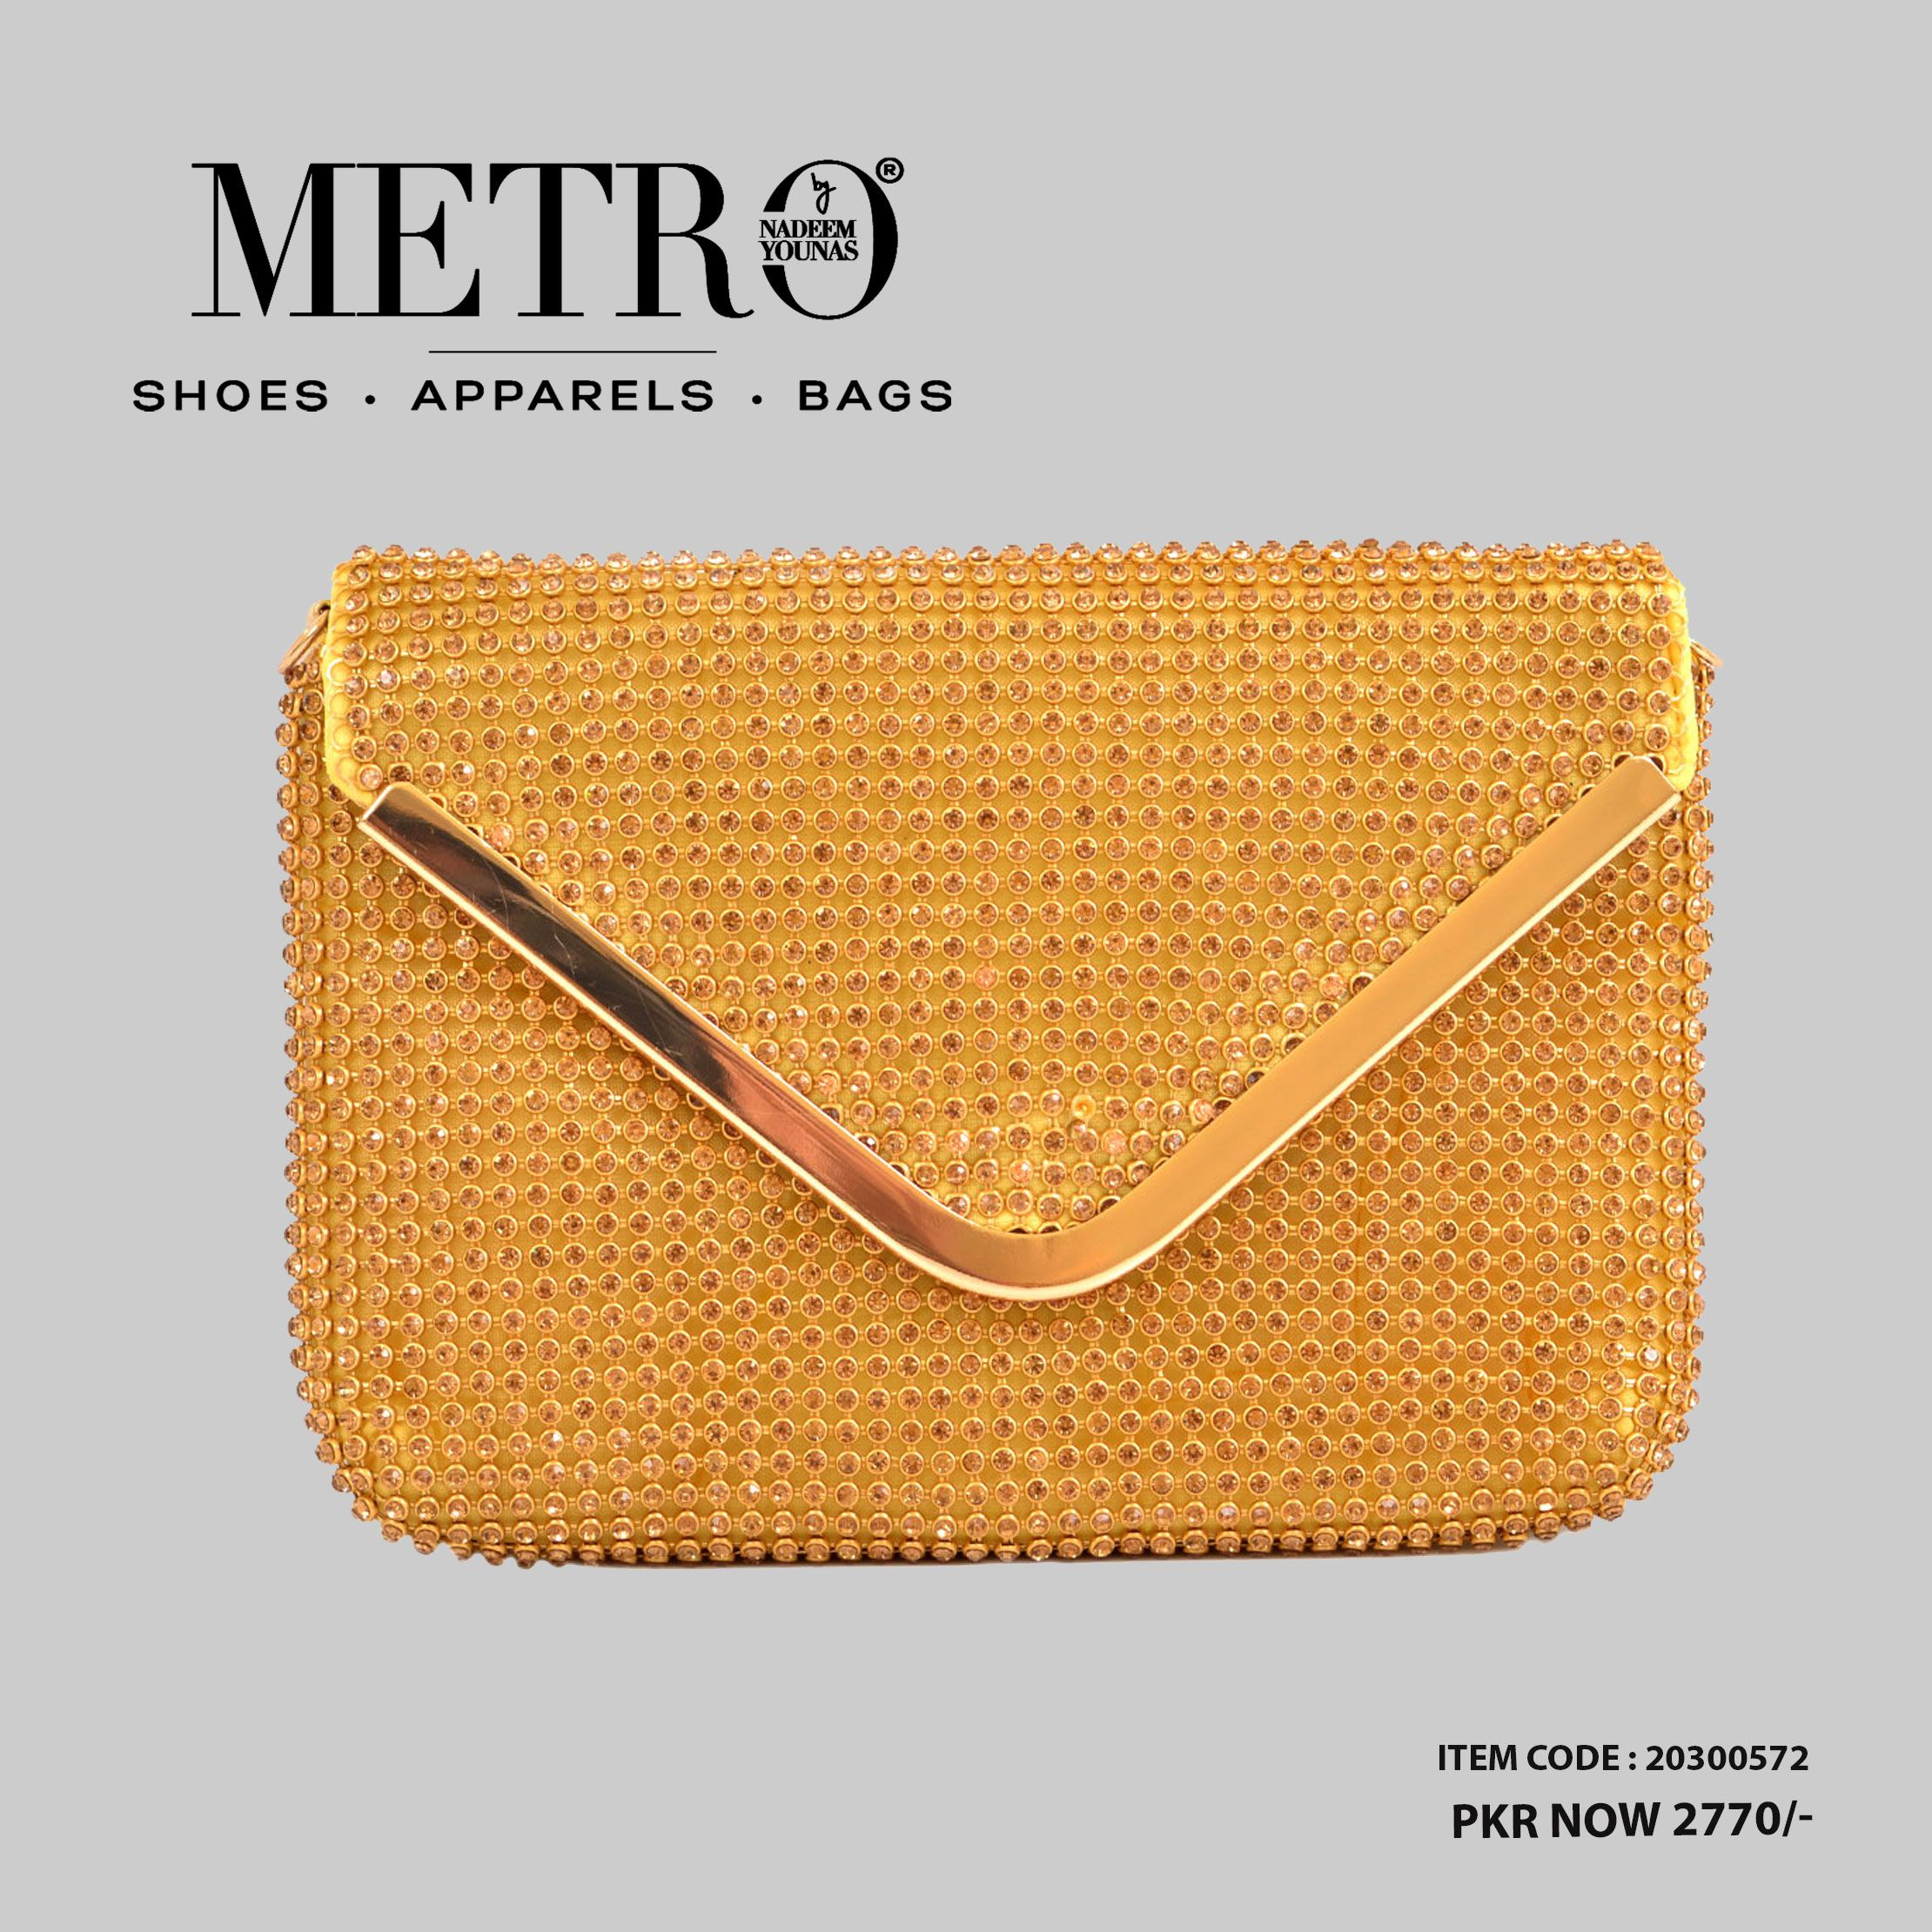 highly coveted range of new lifestyle great variety models Pin by Metro Shoes Pakistan on Metro shoes | Bags, Online ...